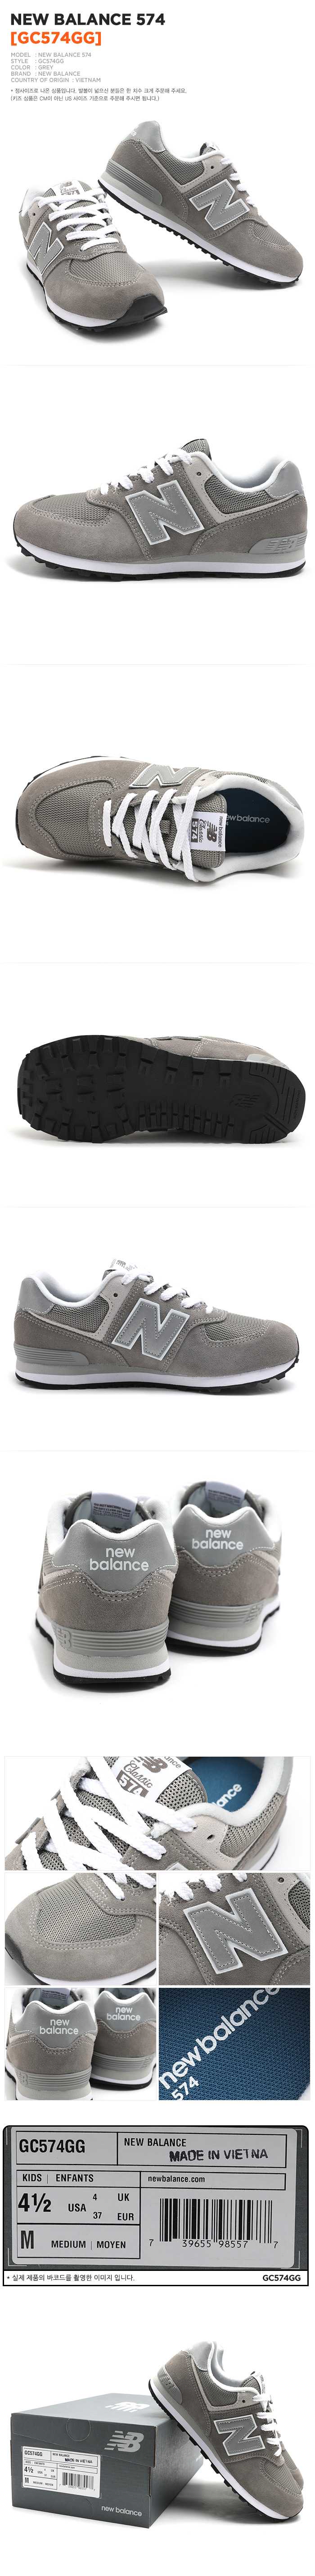 뉴발란스 574 (NEW BALANCE 574) [GC574GG]